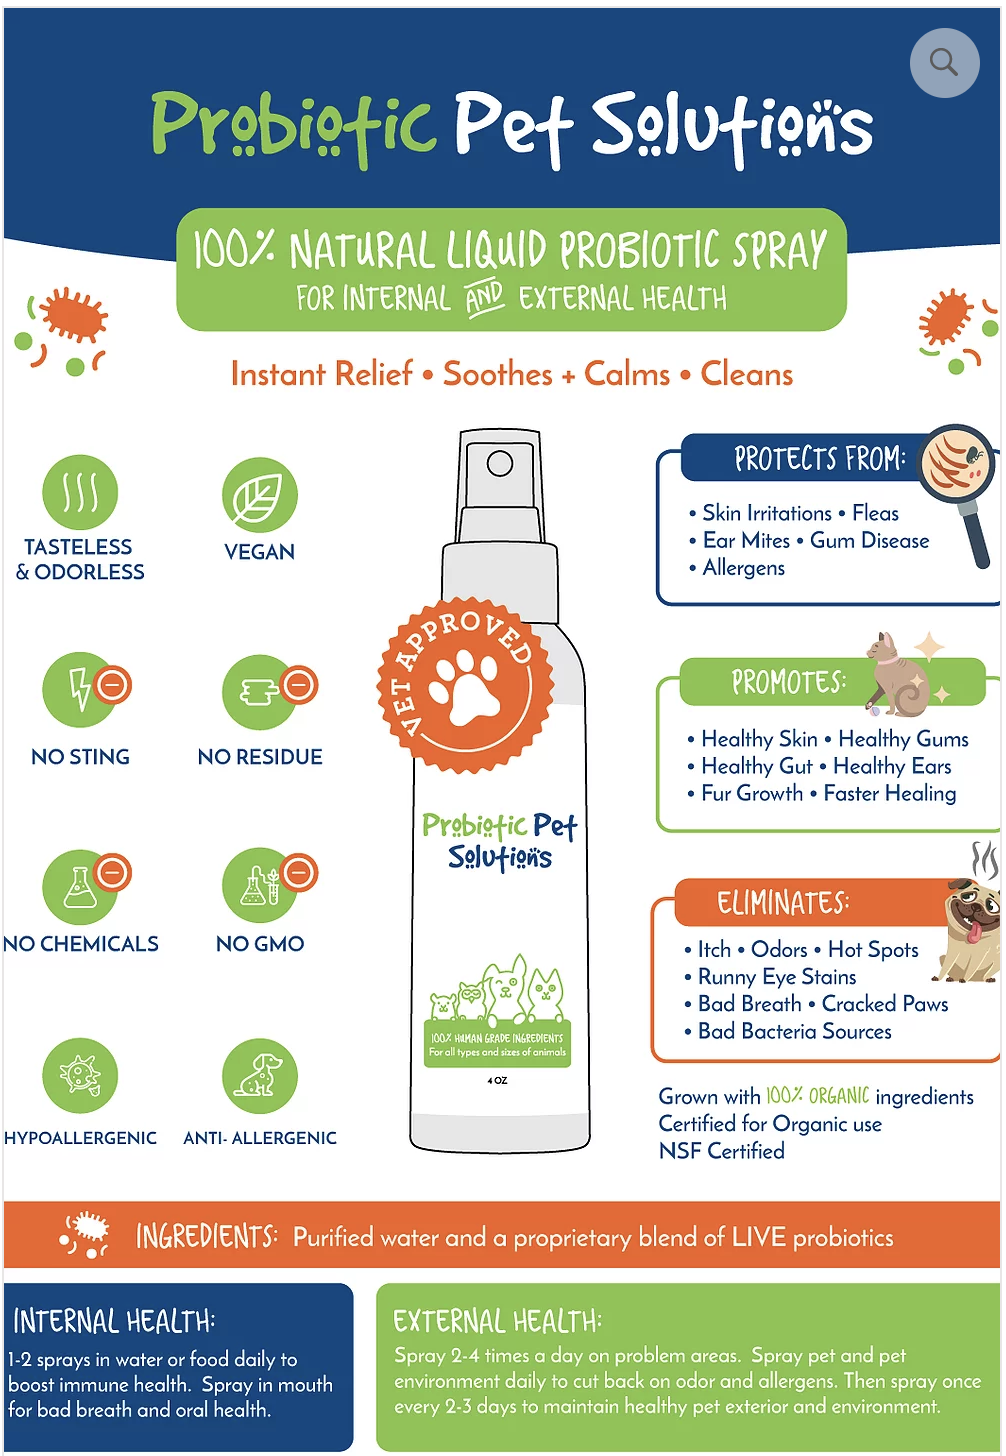 probiotic pet solutions infographic